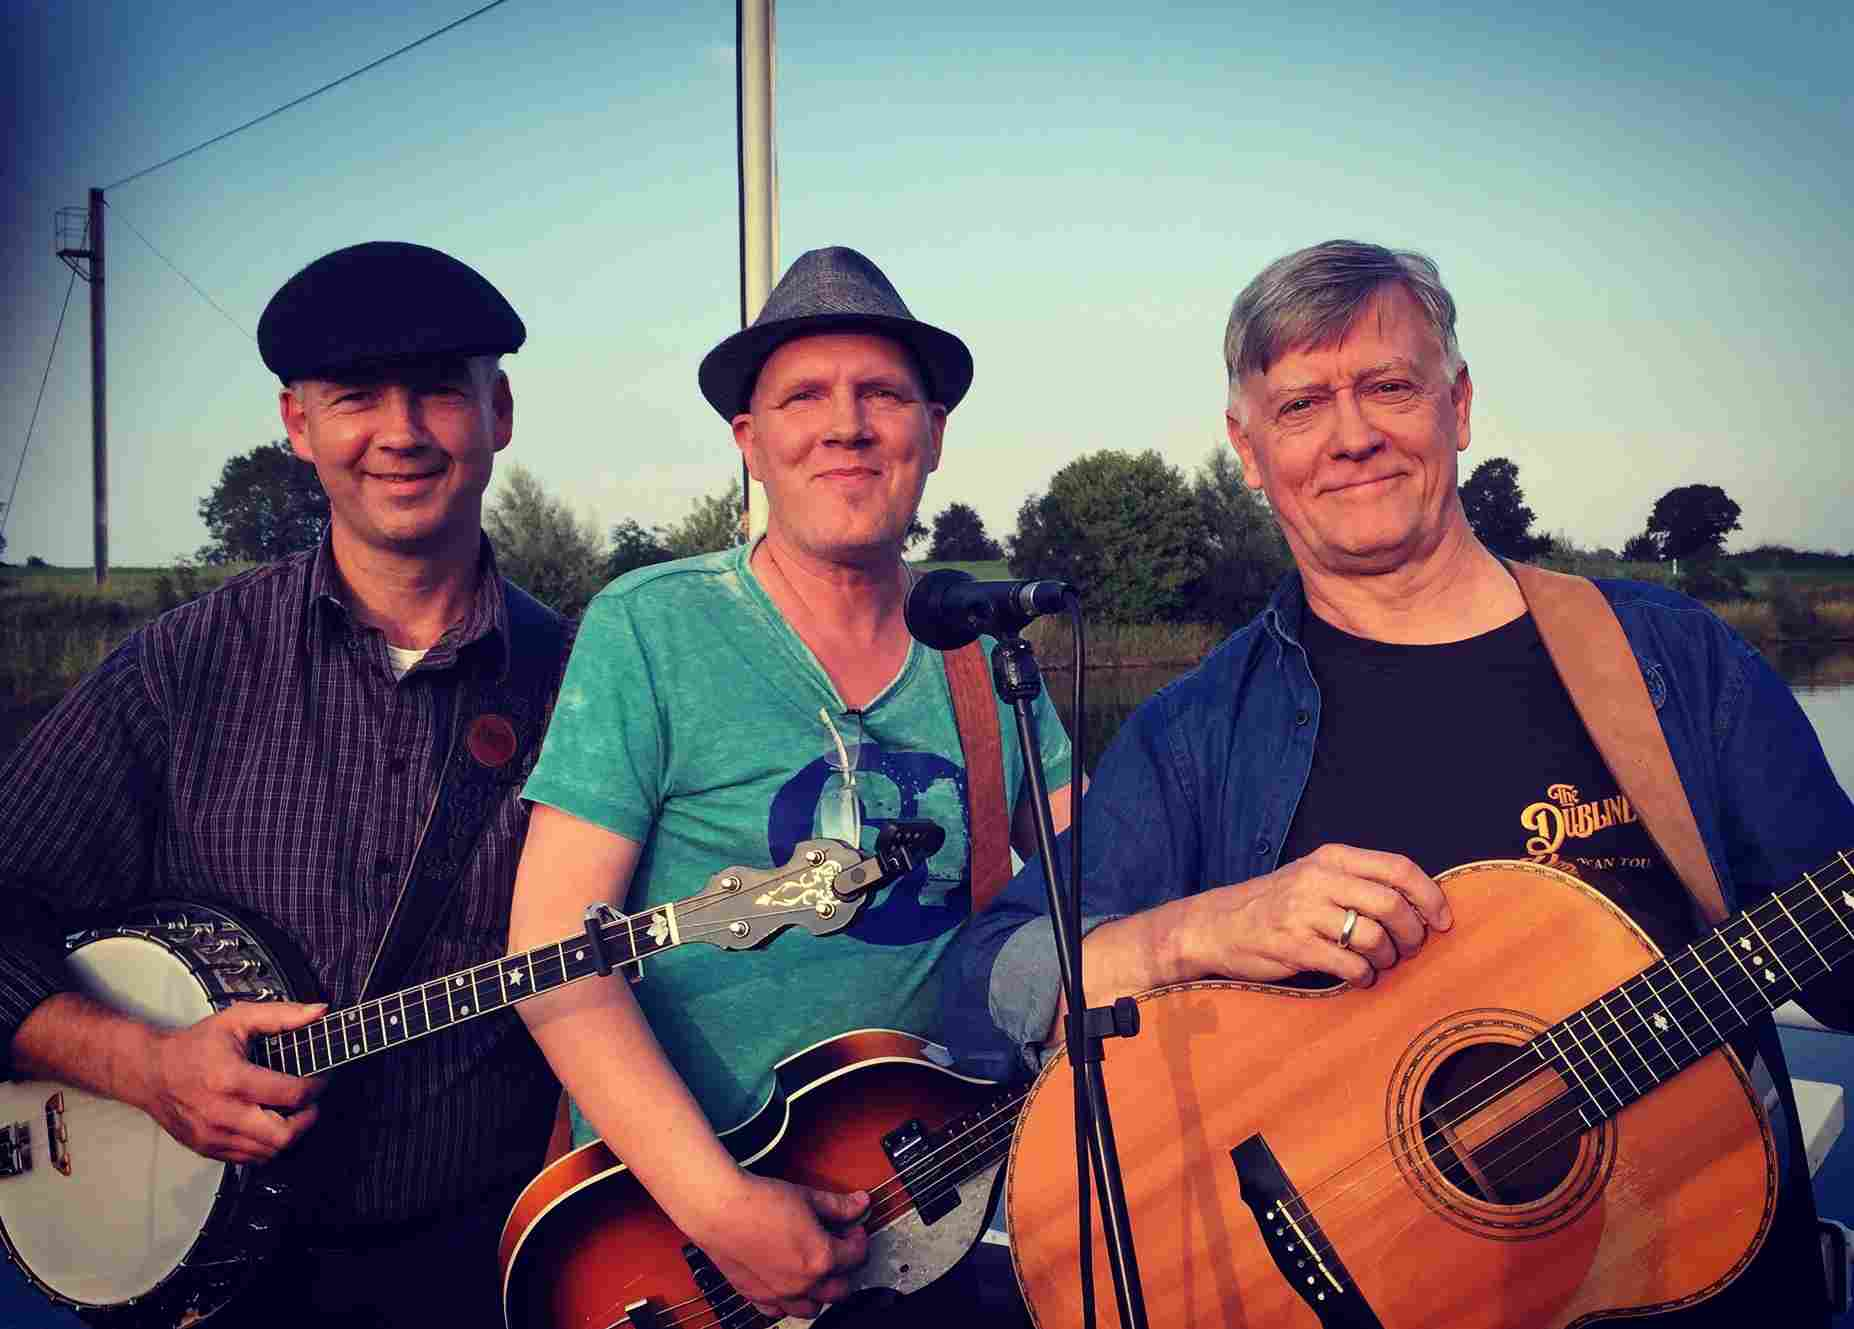 Foto: das Josie White Revival Band Trio in Schweringen